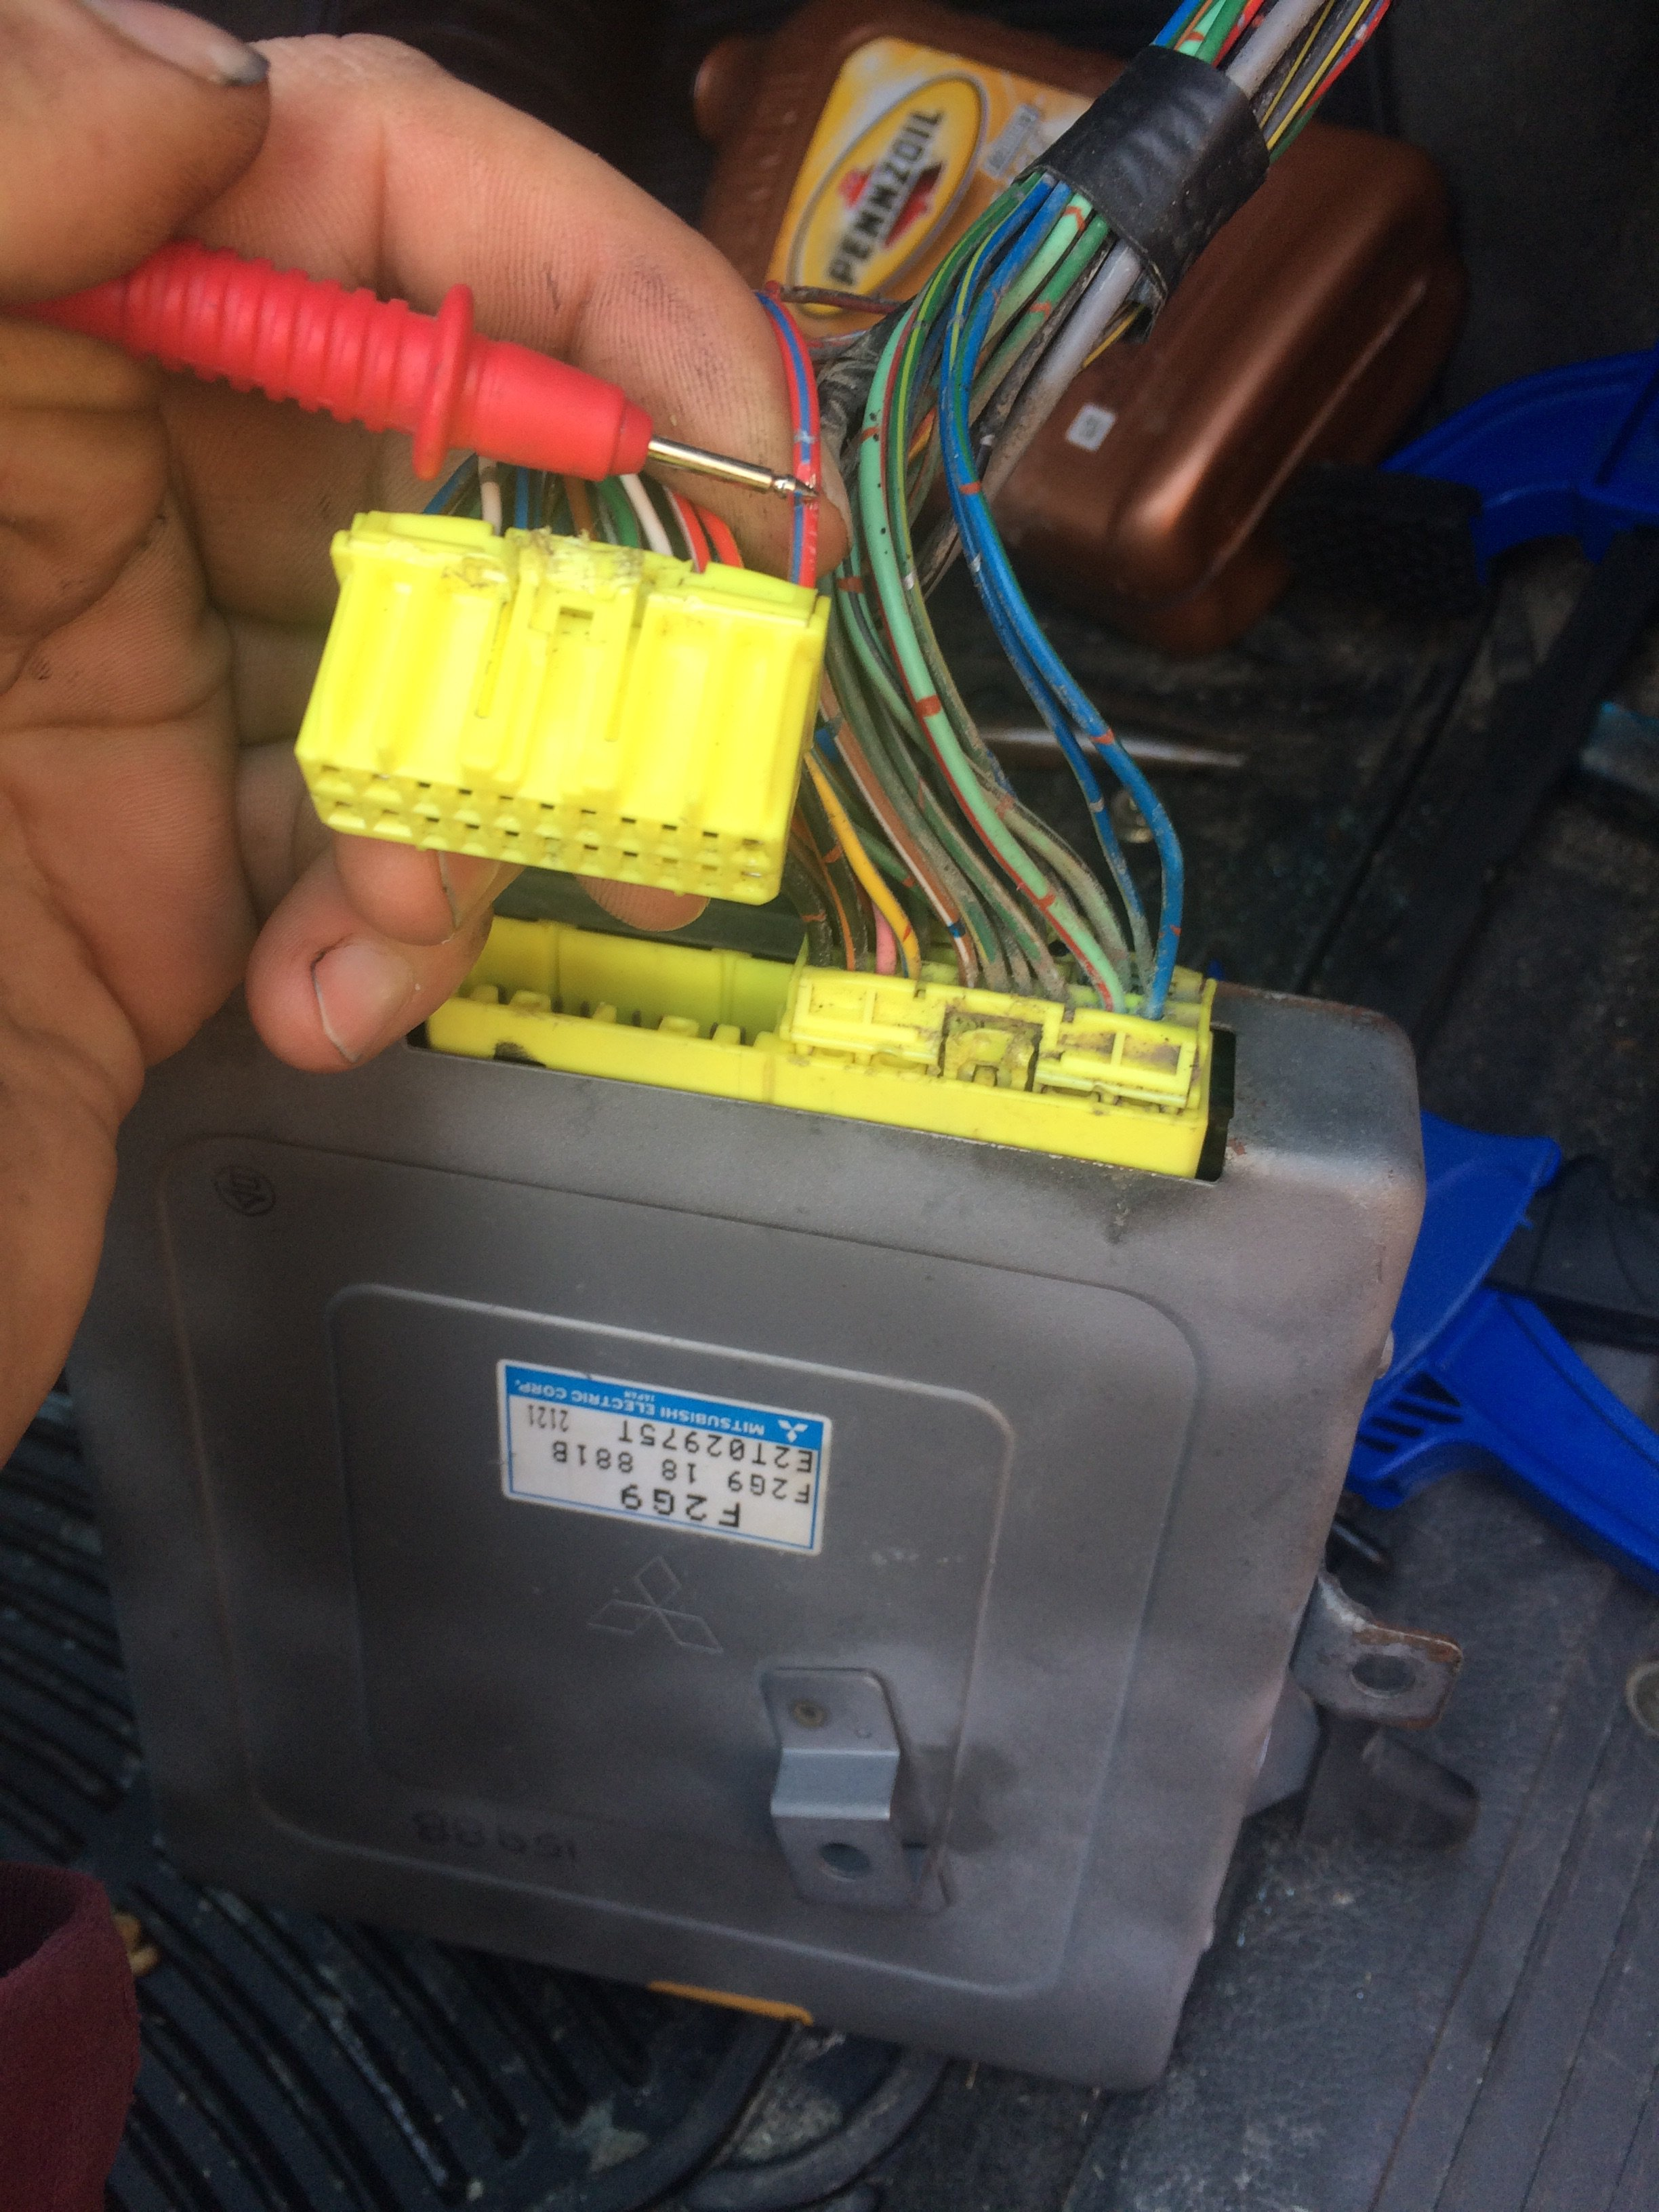 92 Mazda B2200 Ignition Coil Wiring Together With 89 Mazda B2200 No